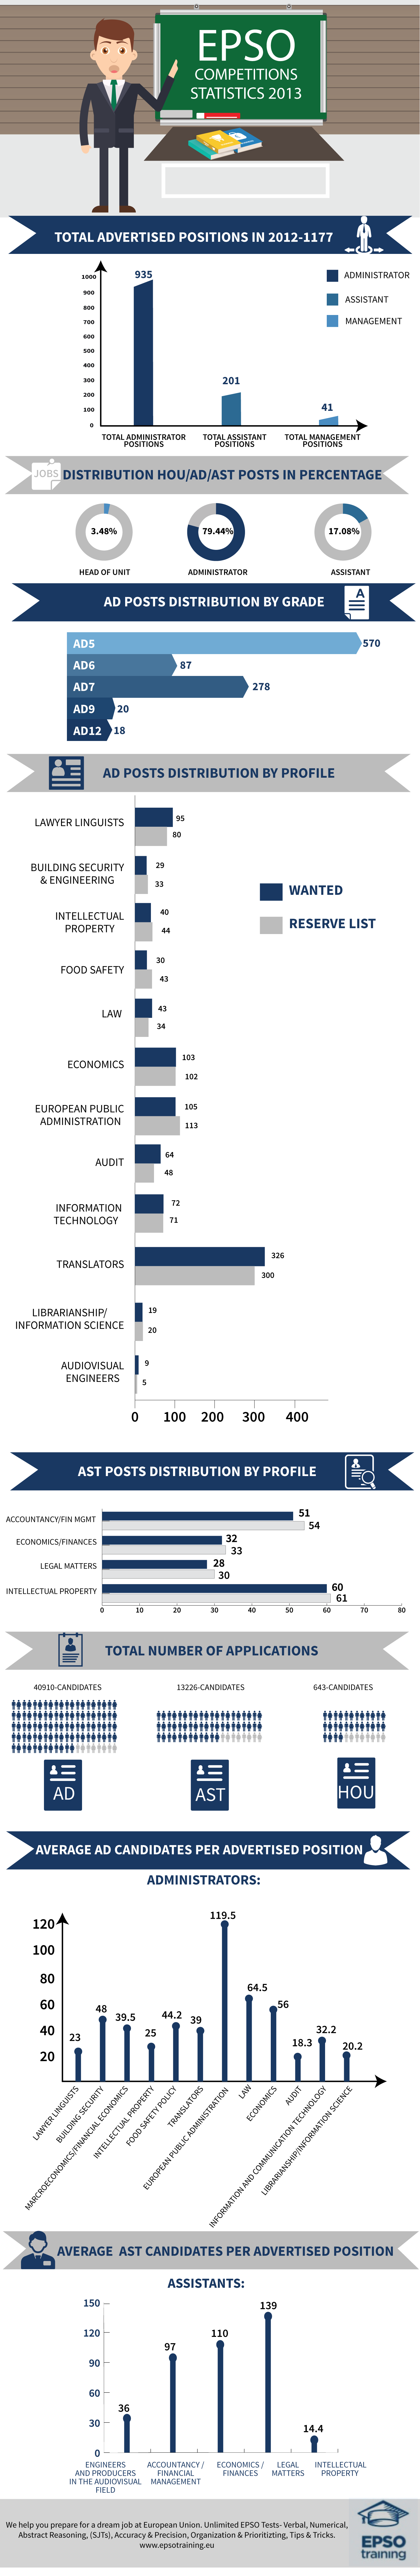 Epso Competitions Statistics 2013